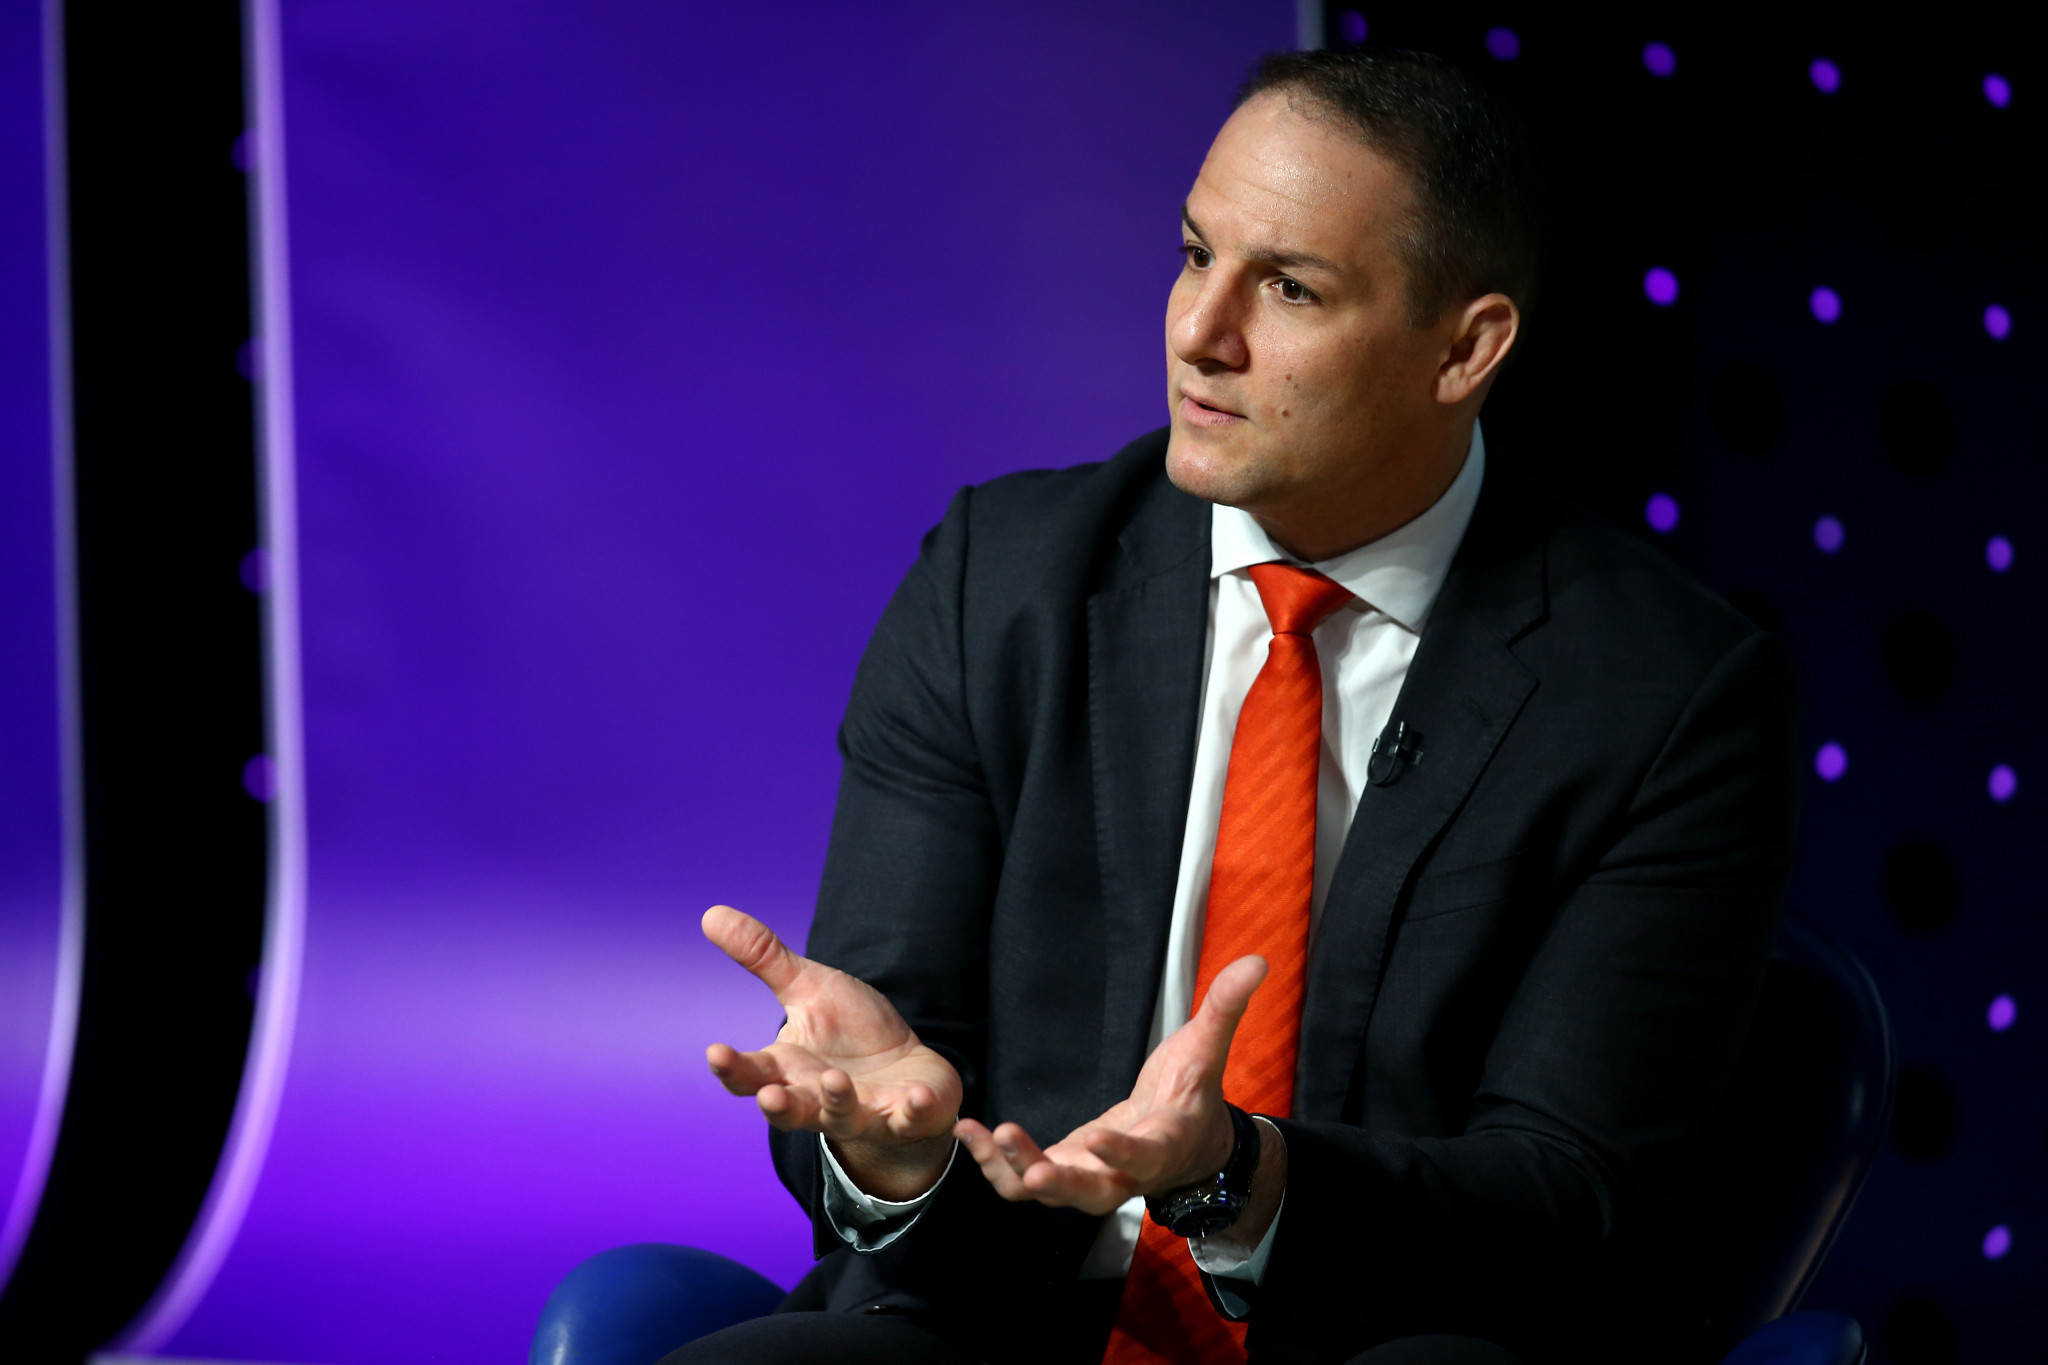 Grevemberg joins Centre for Sport and Human Rights in new role